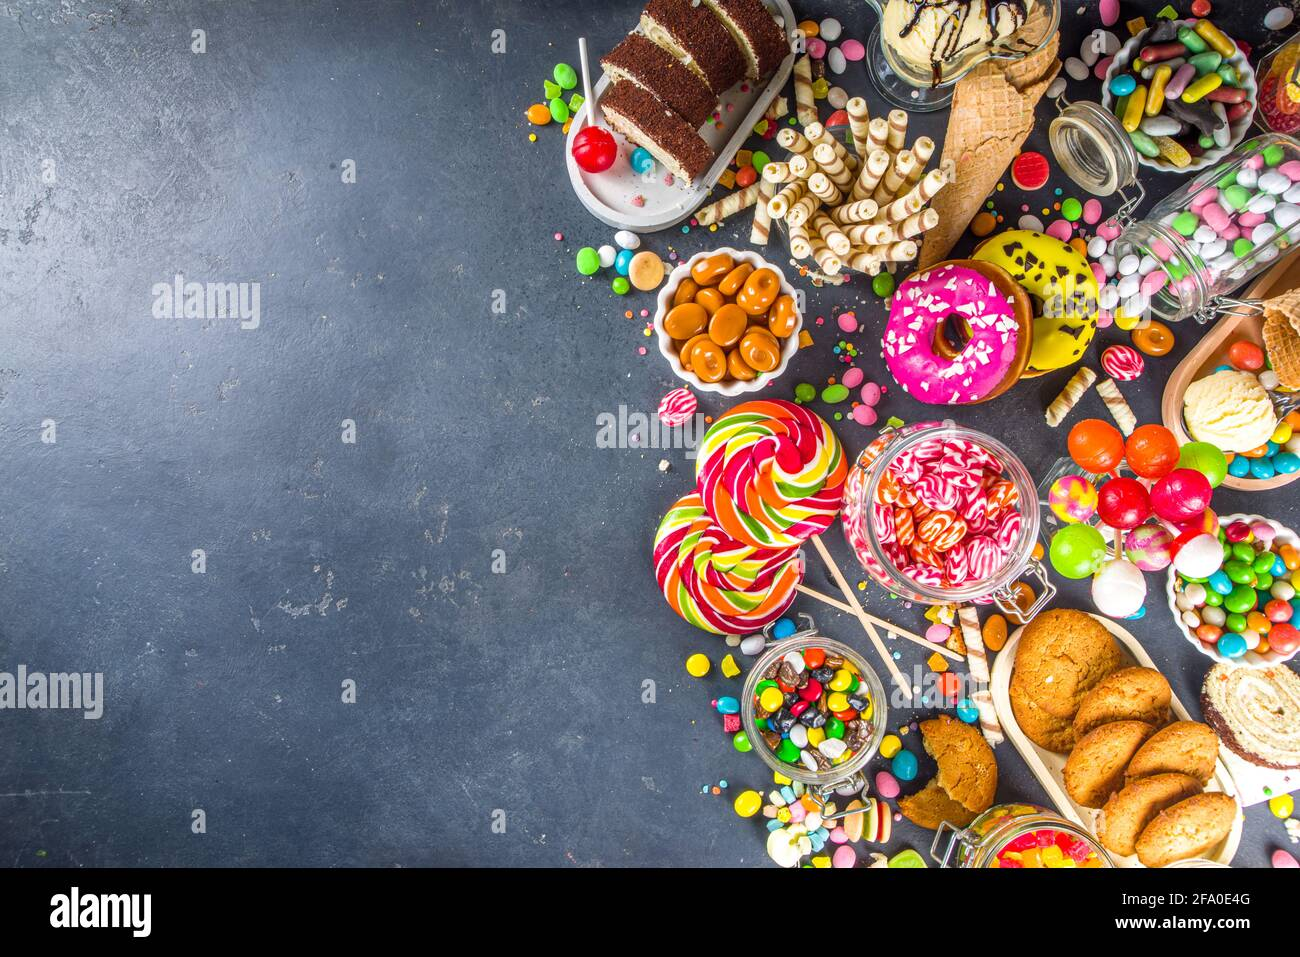 Selection of colorful sweets. Set of various candies, chocolates, donuts, cookies, lollipops, ice cream top view on black concrete background Stock Photo